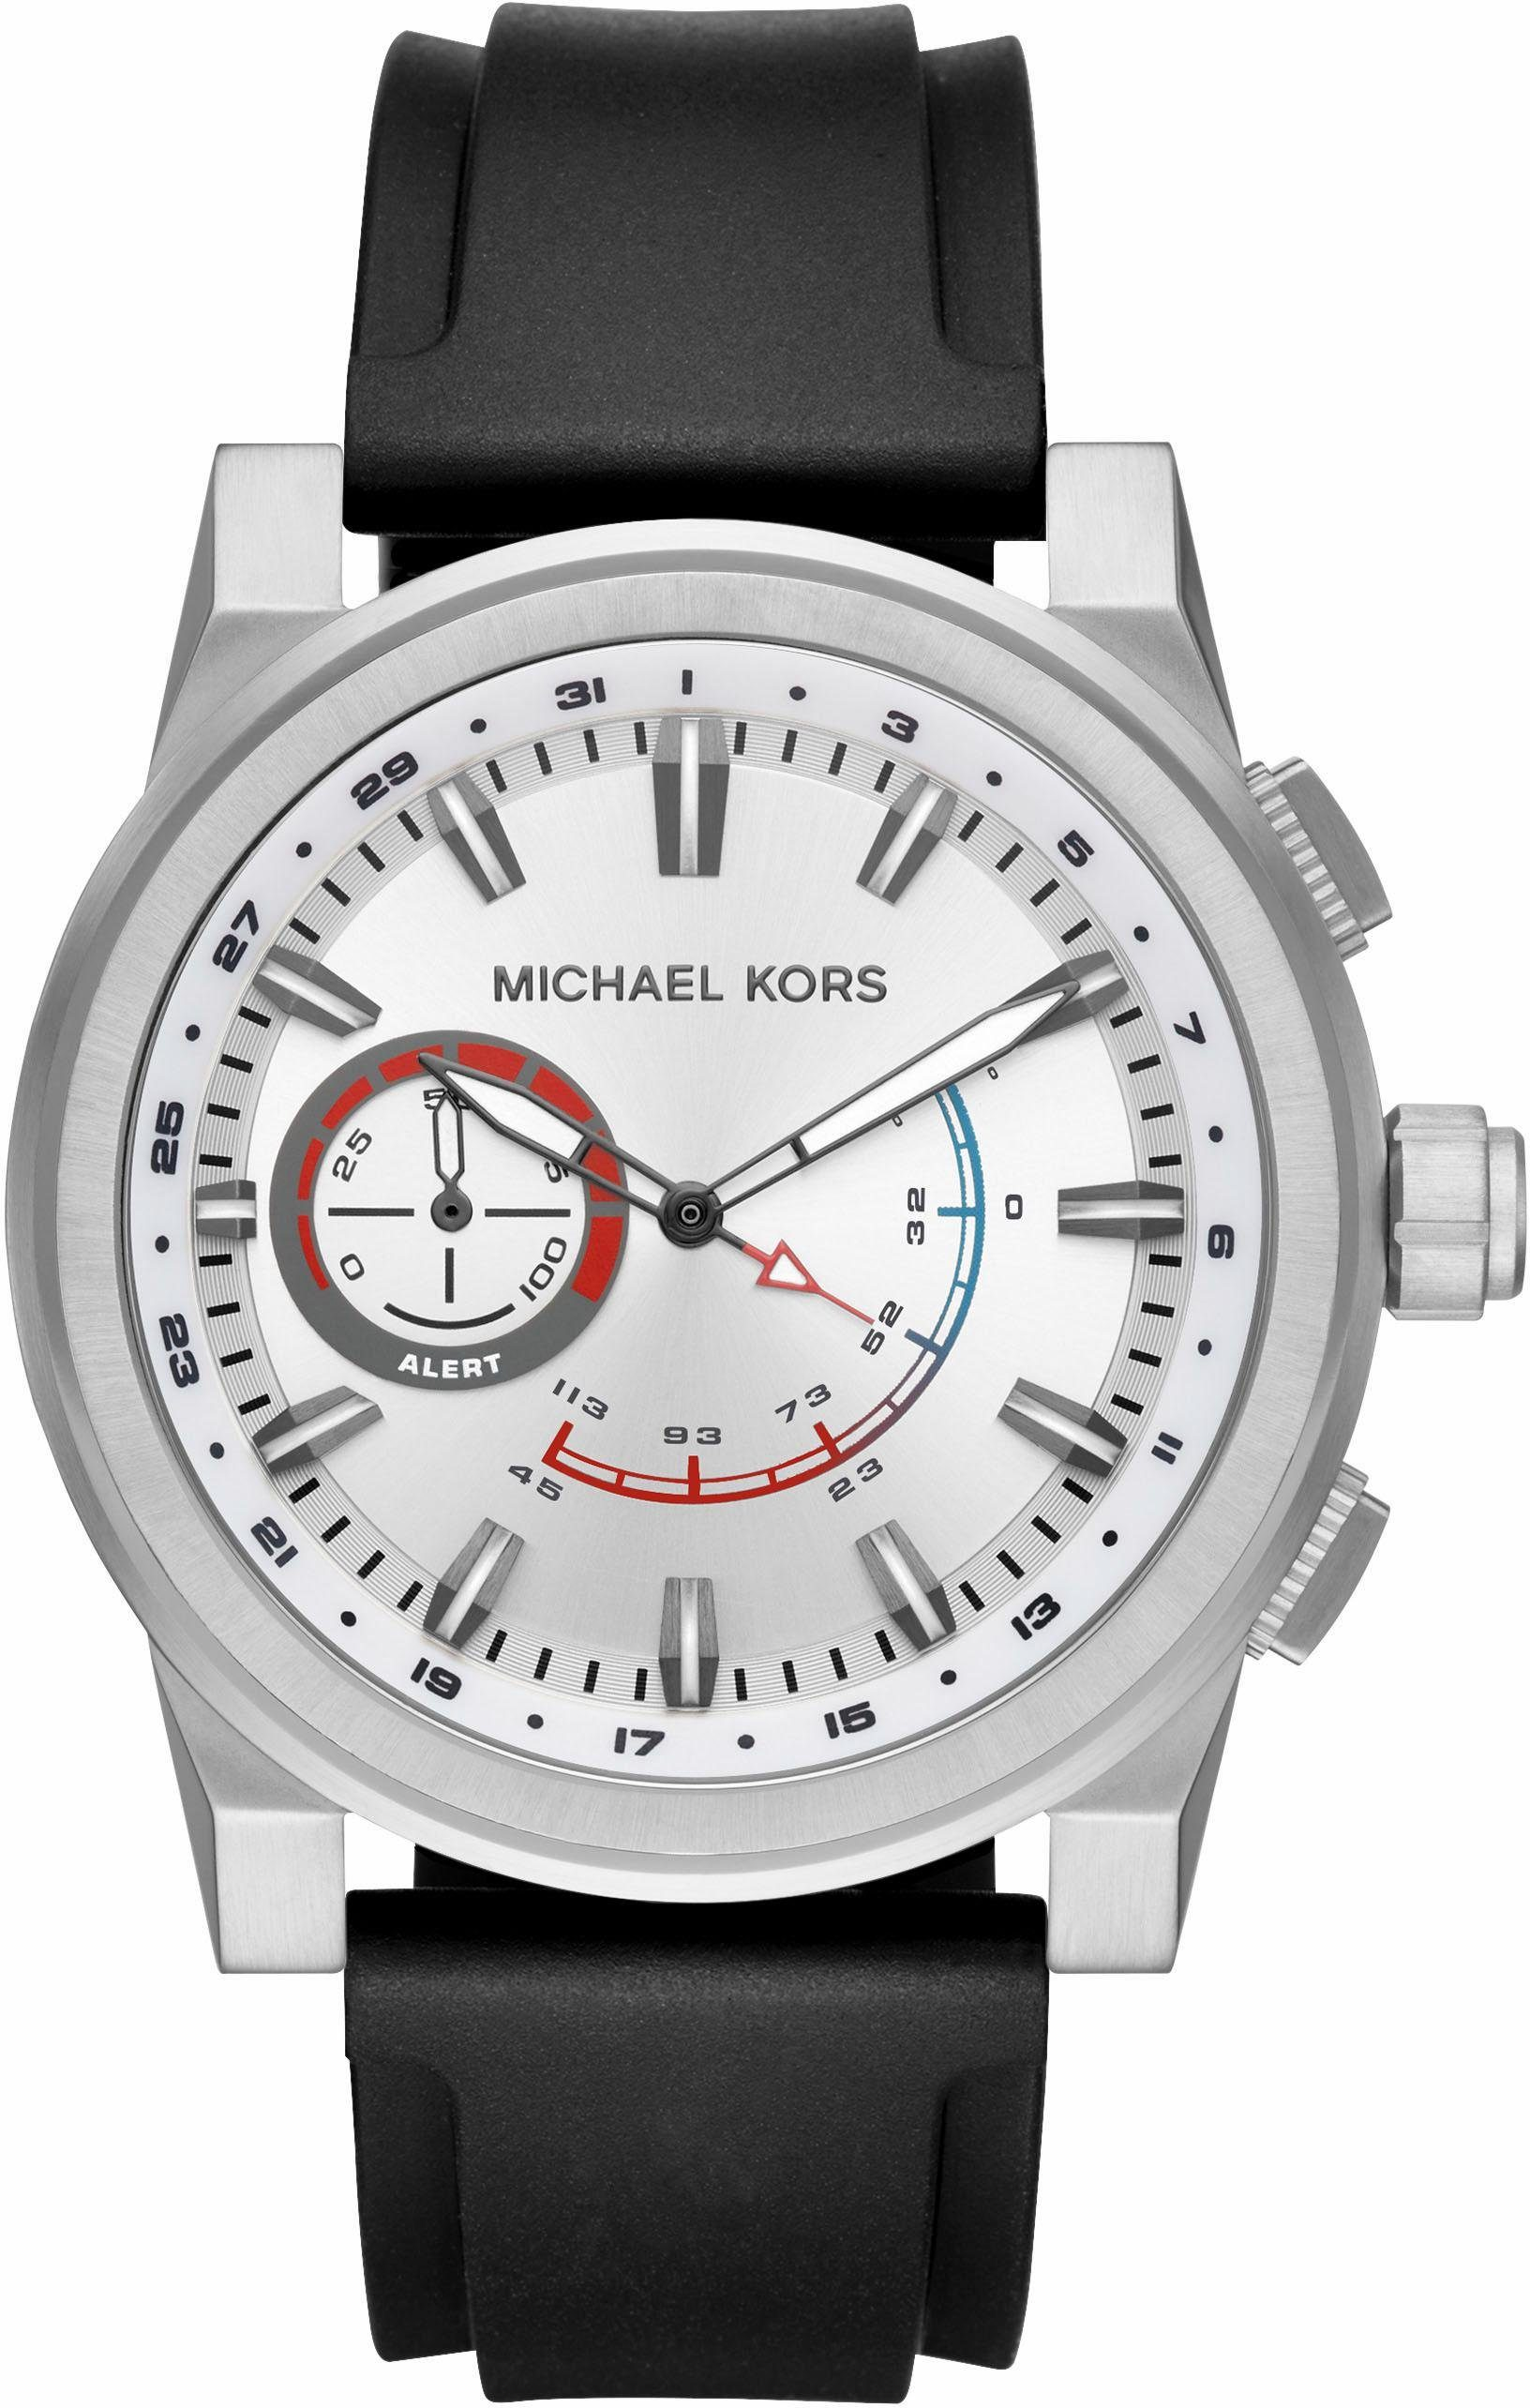 MICHAEL KORS ACCESS GRAYSON, MKT4009 Smartwatch (Android Wear)